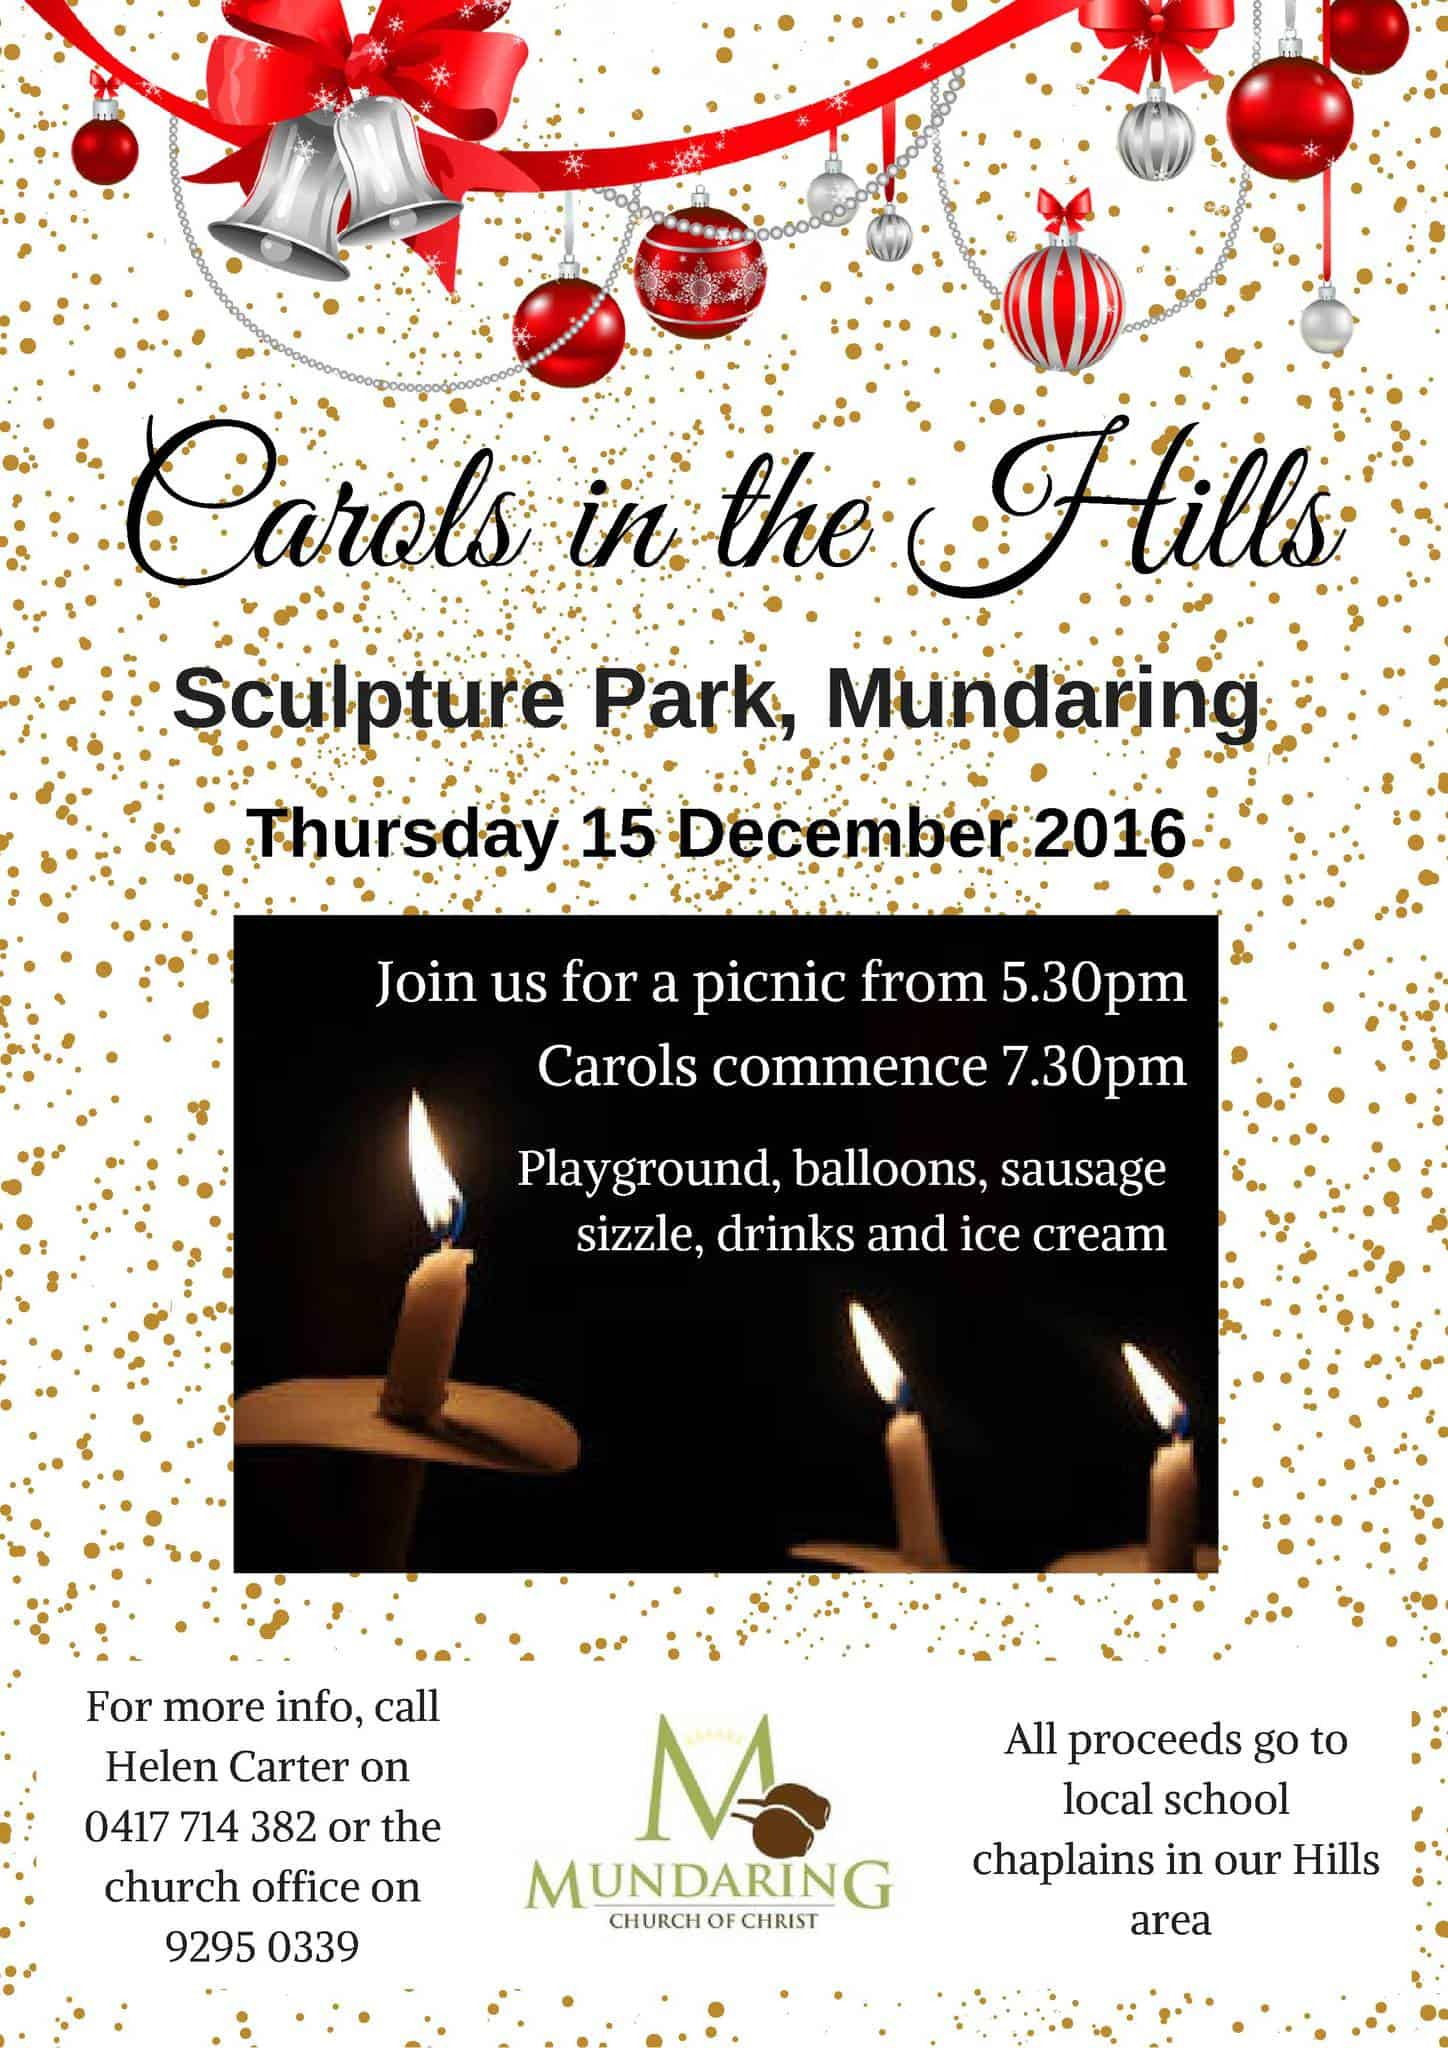 Carols in the Hills carols in the hills